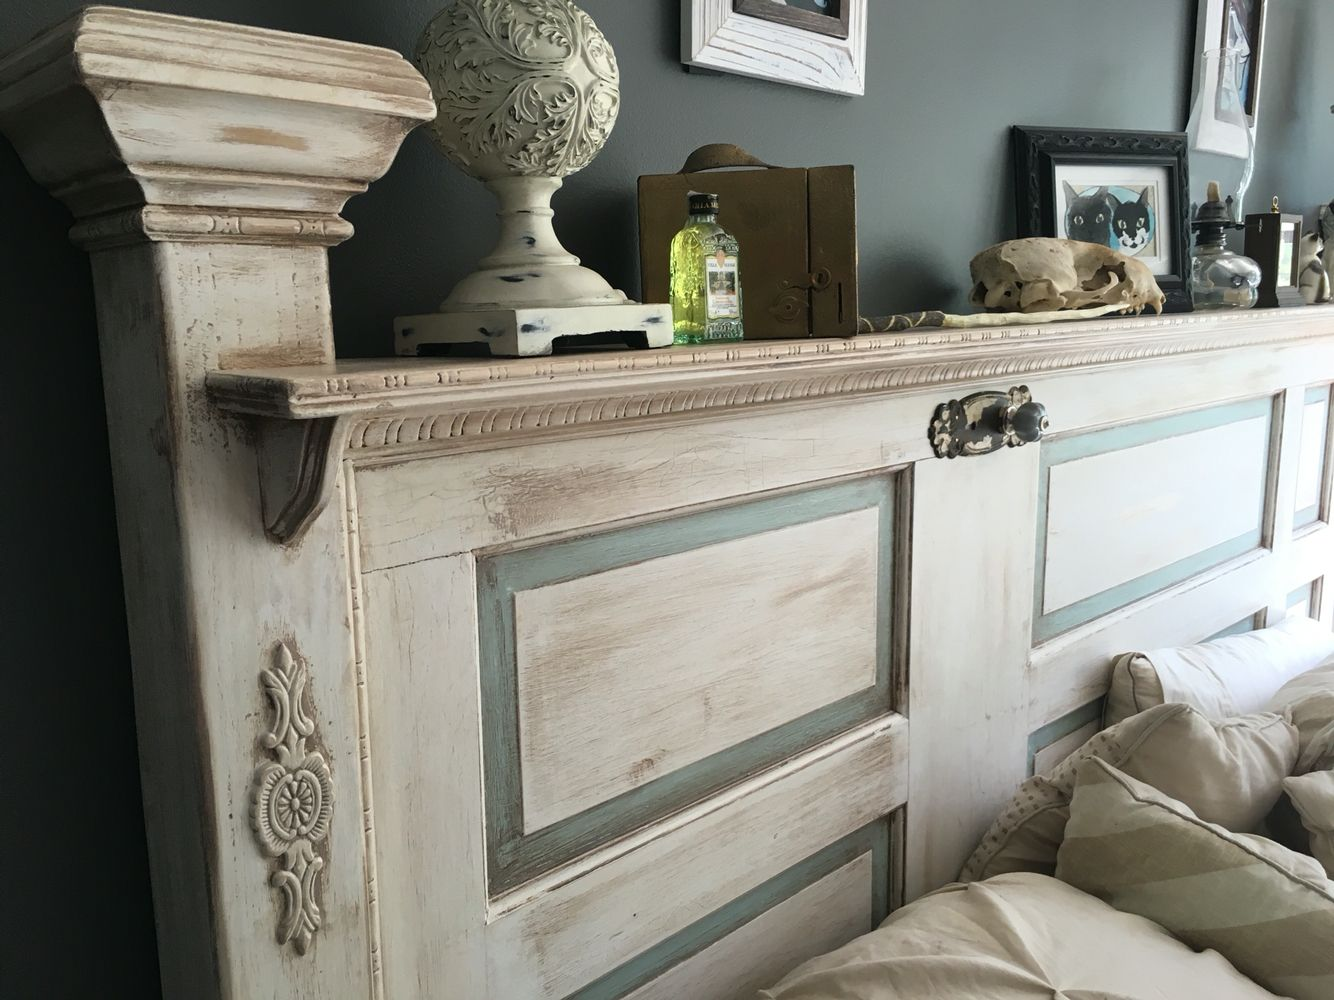 Antique Door Shabby Chic French Provincial Headboard Made By My Husband Finished With Antiqu Headboard From Old Door Shabby Chic Room Antique Door Headboards